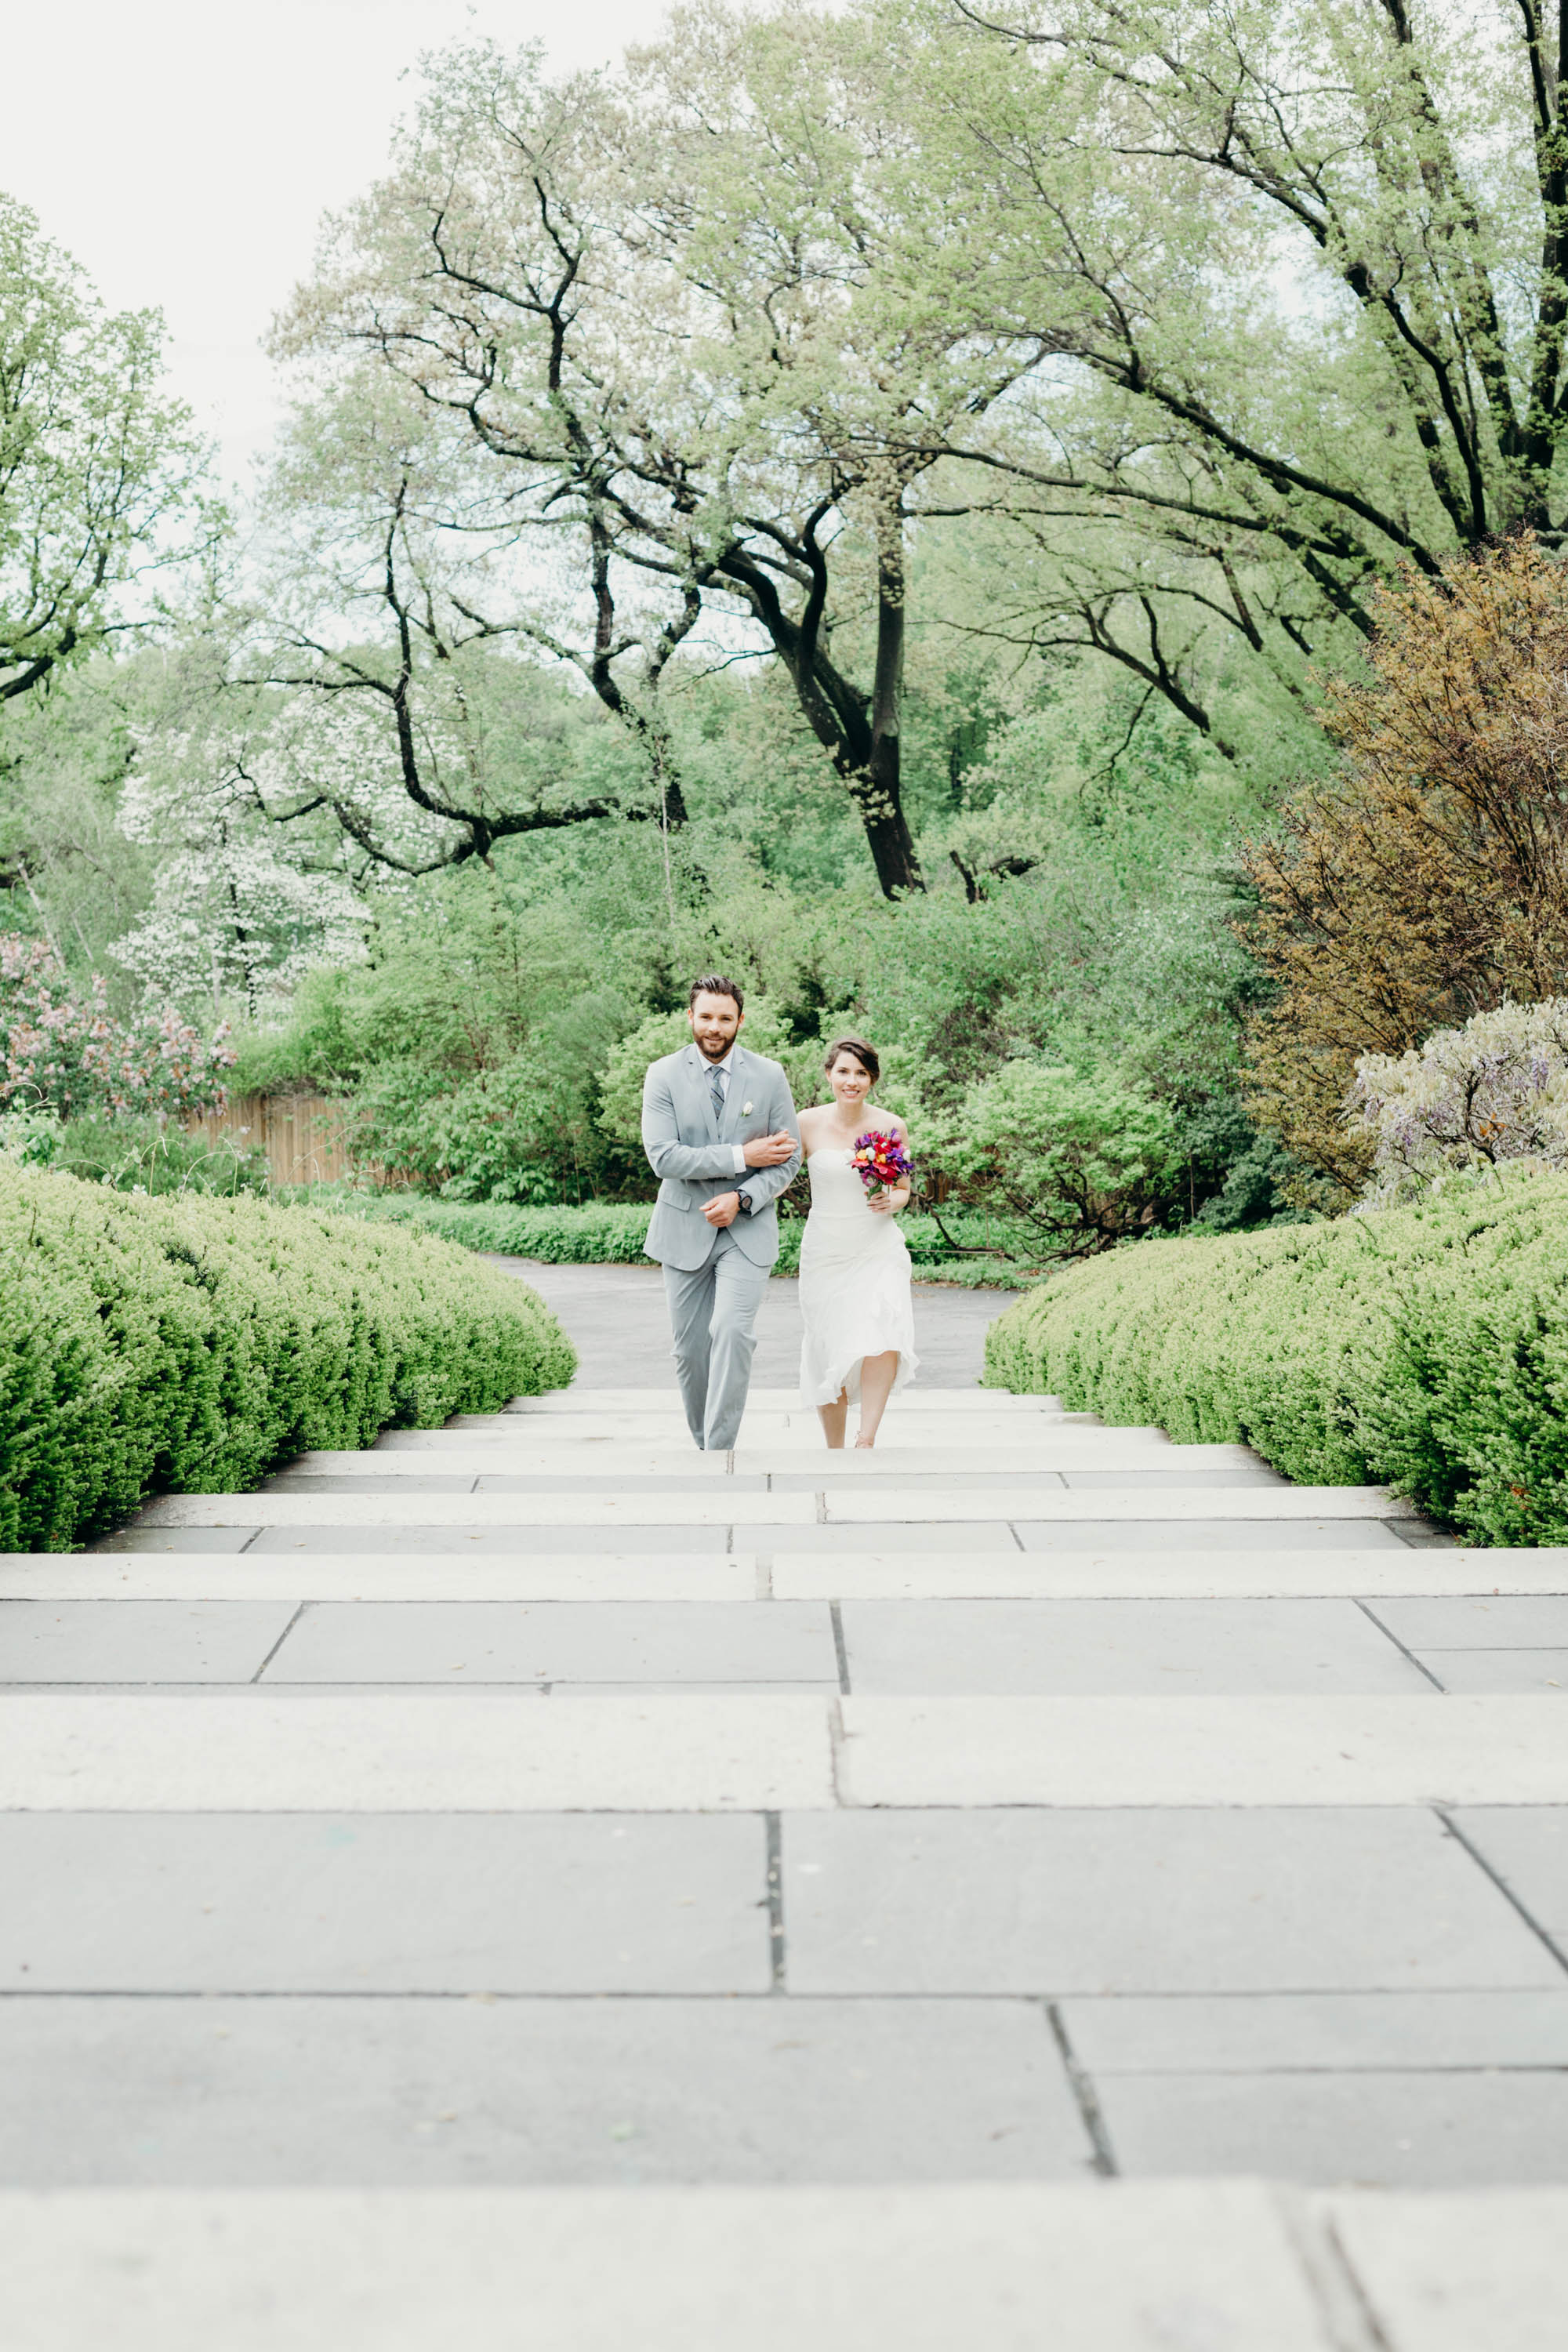 brooklyn-botanical-garden-elopement-elizabeth-tsung-photo-9.jpg